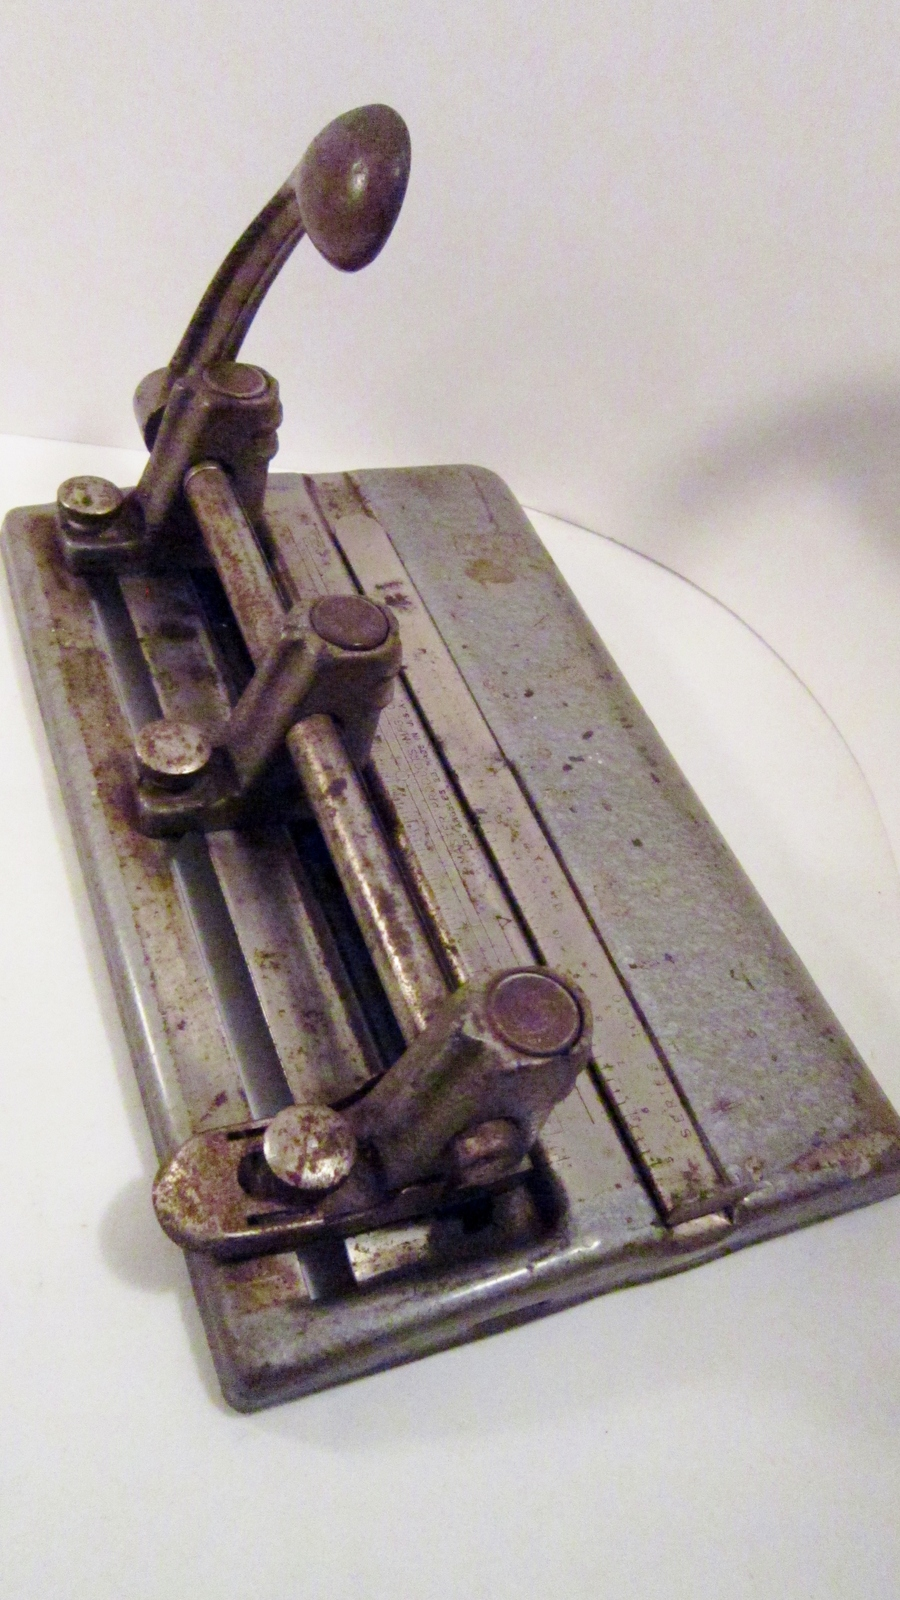 Steel_three-hole_punch_1950s_master_series_1000_made_in_usa_01